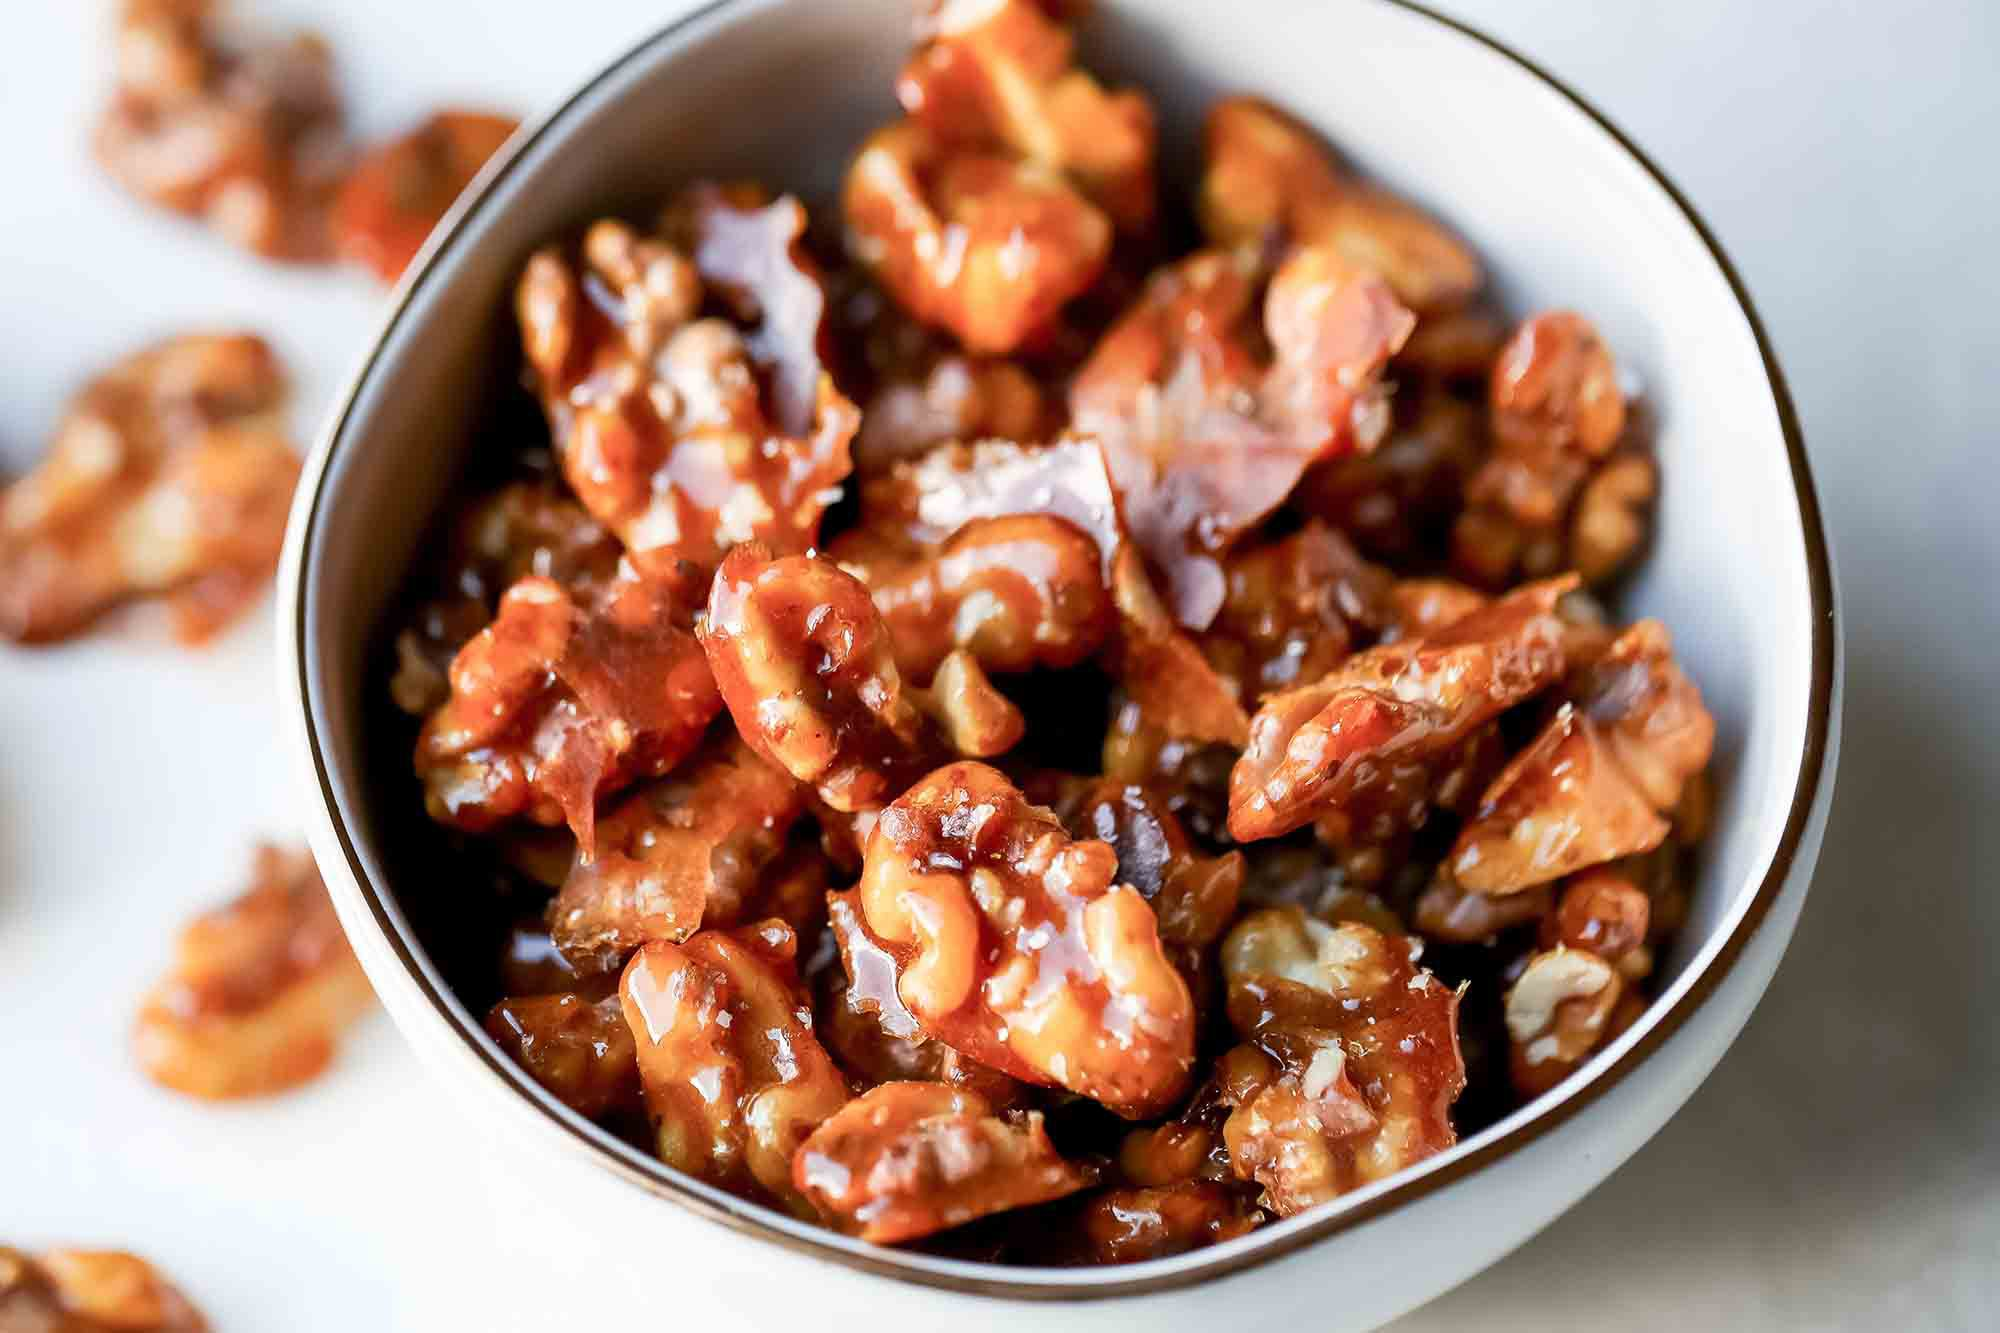 Candied walnuts in a bowl